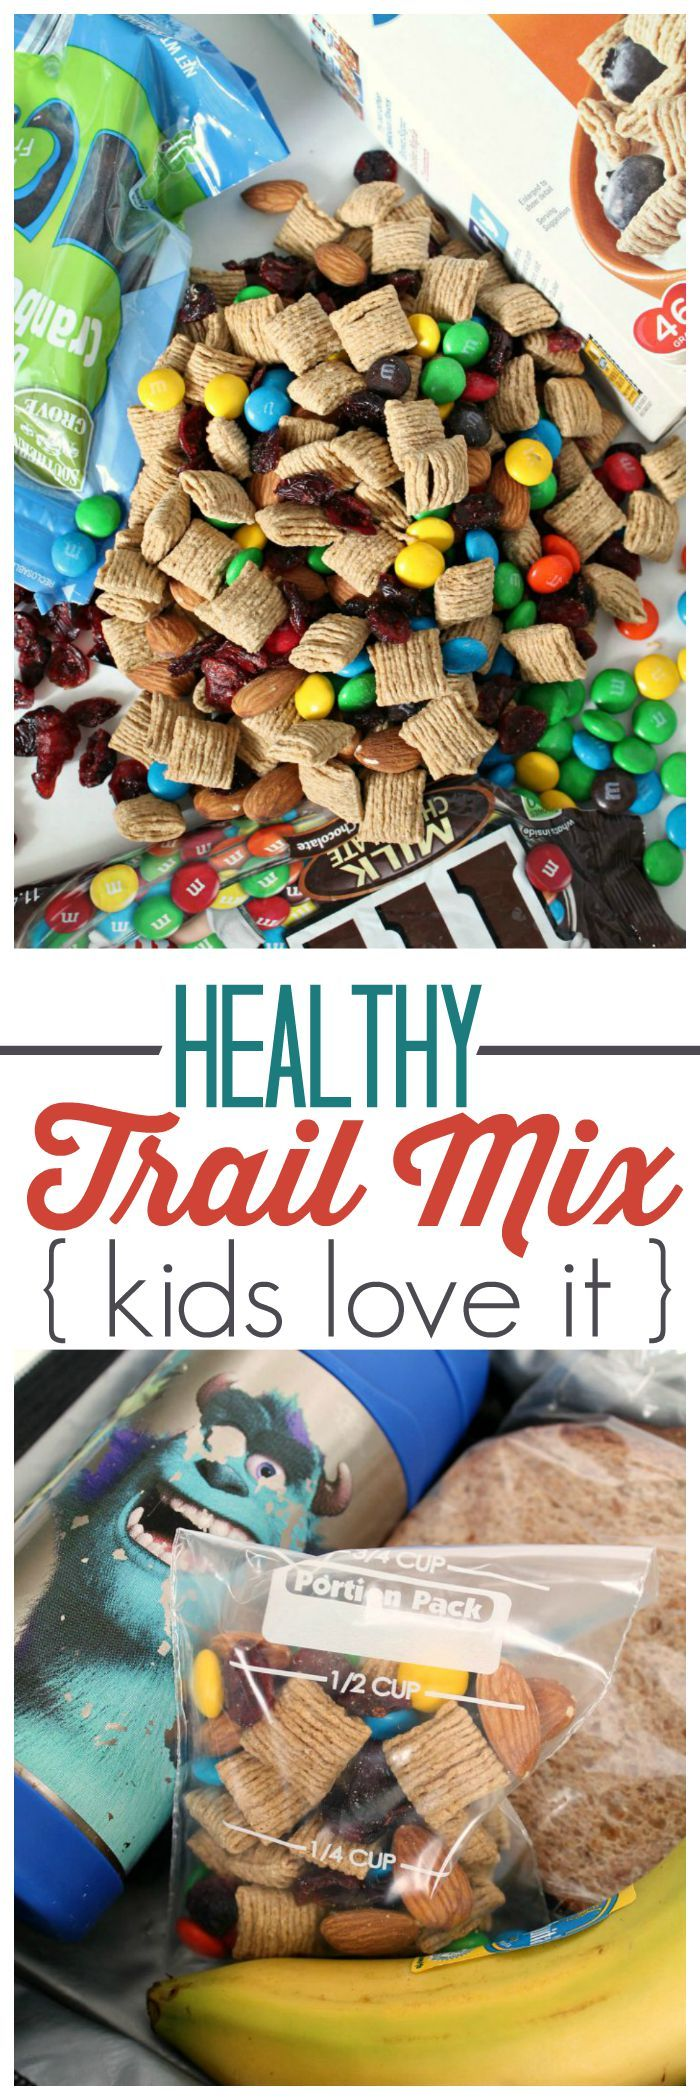 You guys!!! This stuff has saved my life more than once. It's the perfect mix to keep you full and satisfied, kids love it too, We take it everywhere! ~ http://reallifedinner.com